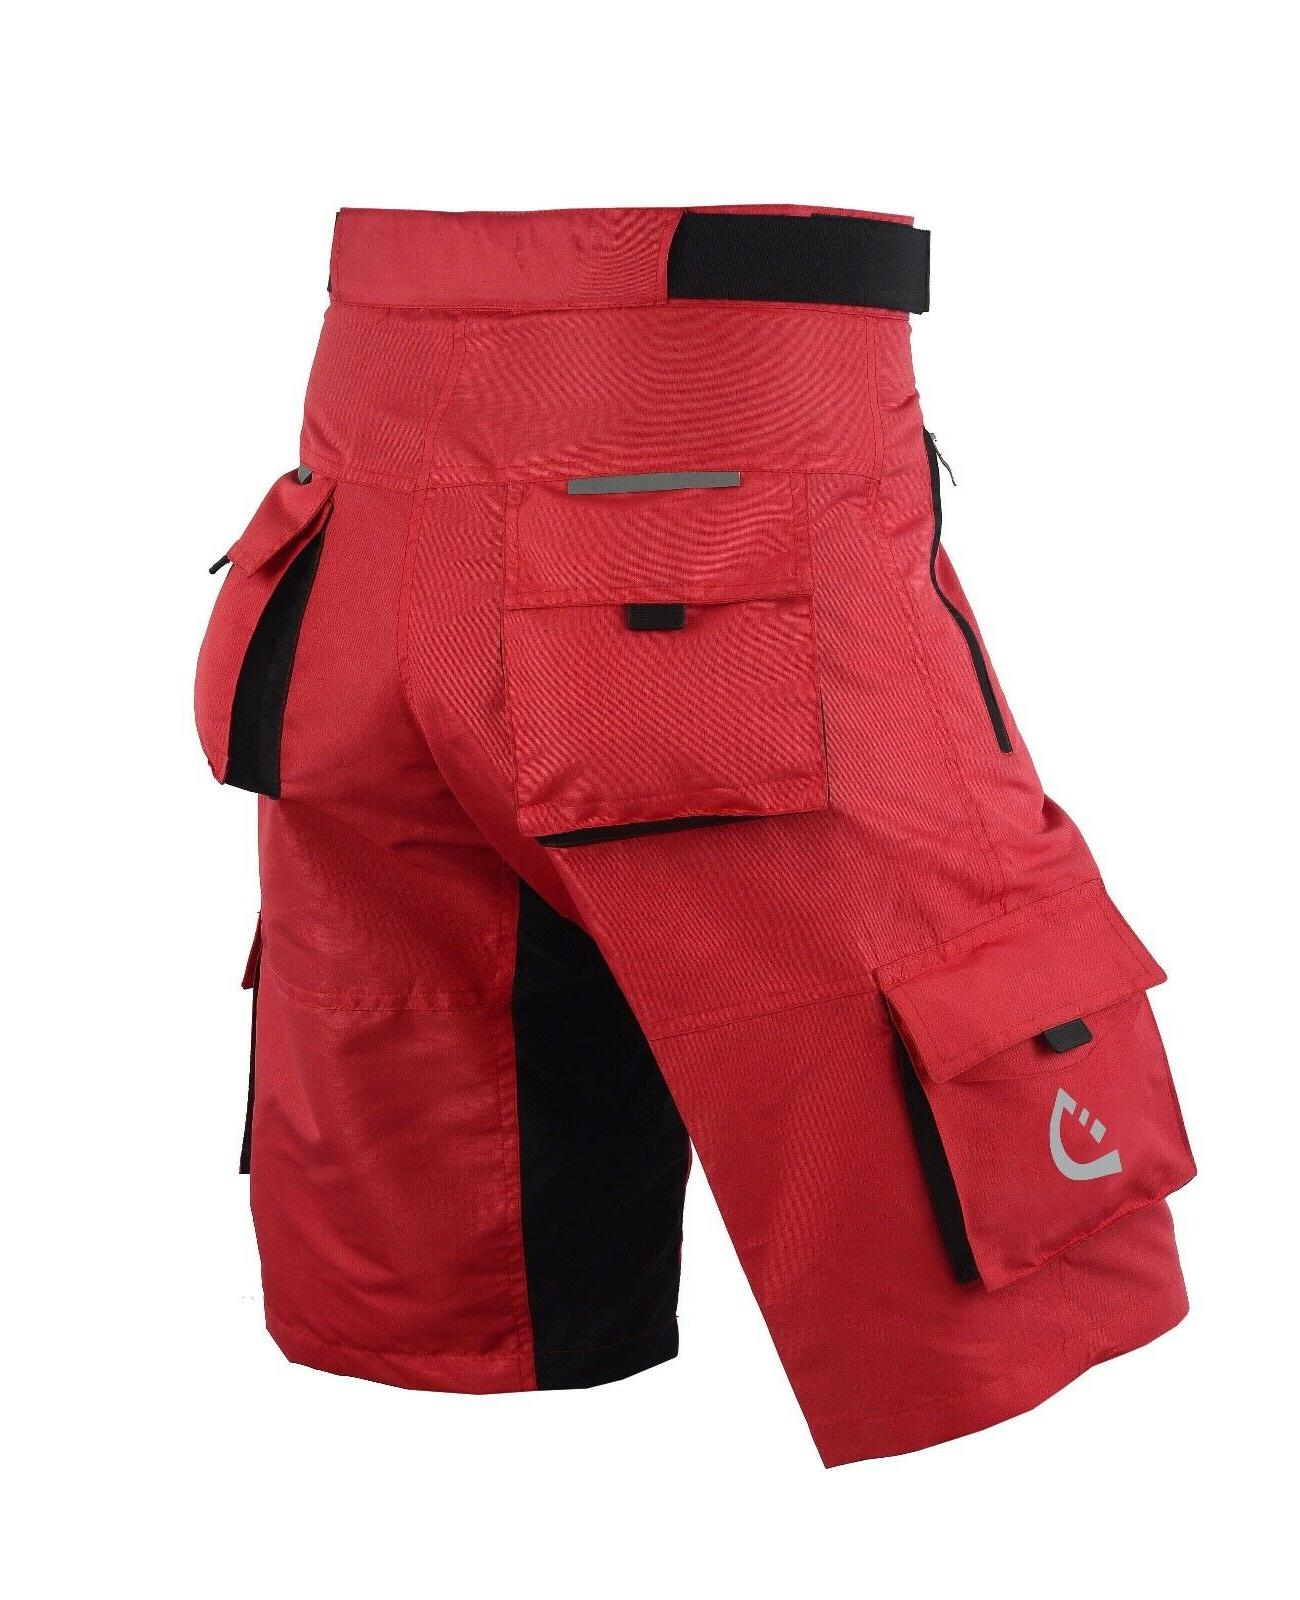 Deckra Men/'s Cycling MTB Shorts with Detachable Padded Inner Liner Baggy Shorts